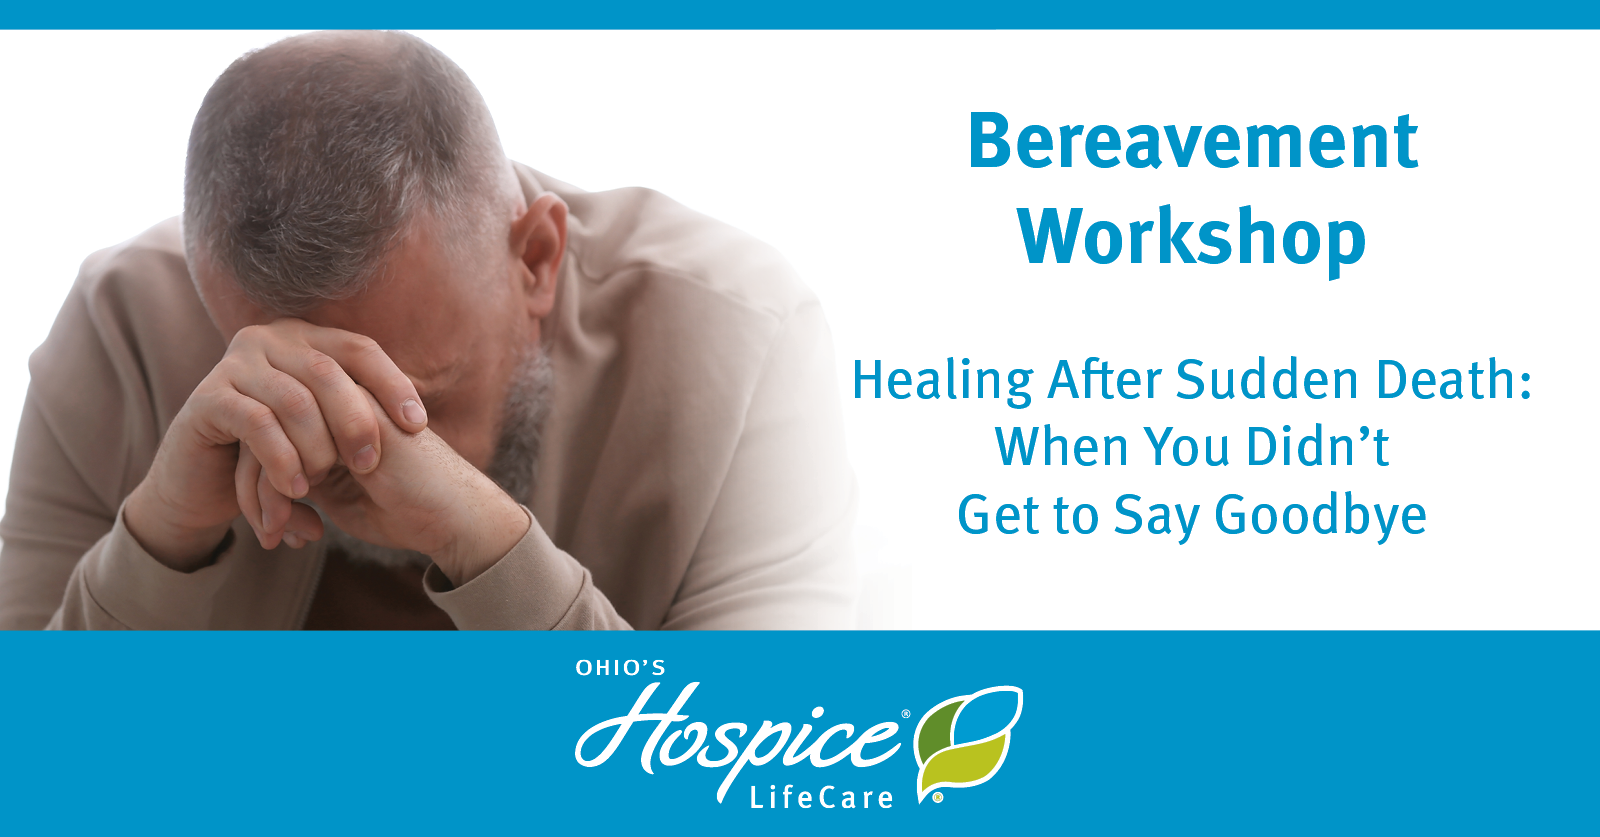 Ohio's Hospice LifeCare Offers Online Bereavement Workshop About Saying Goodbye After A Sudden Death